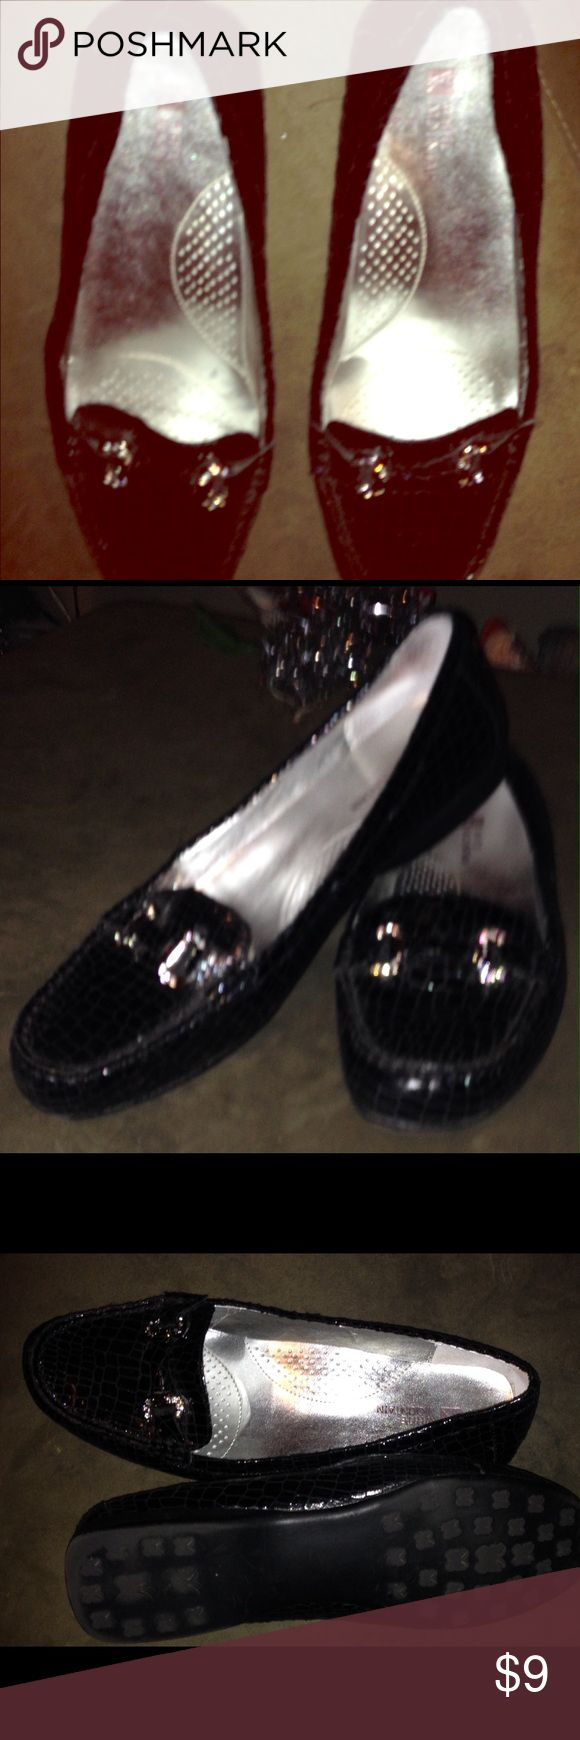 Dress shoes Slip on like loafer shoes  very cute wore a few times white mountain  Shoes Flats & Loafers